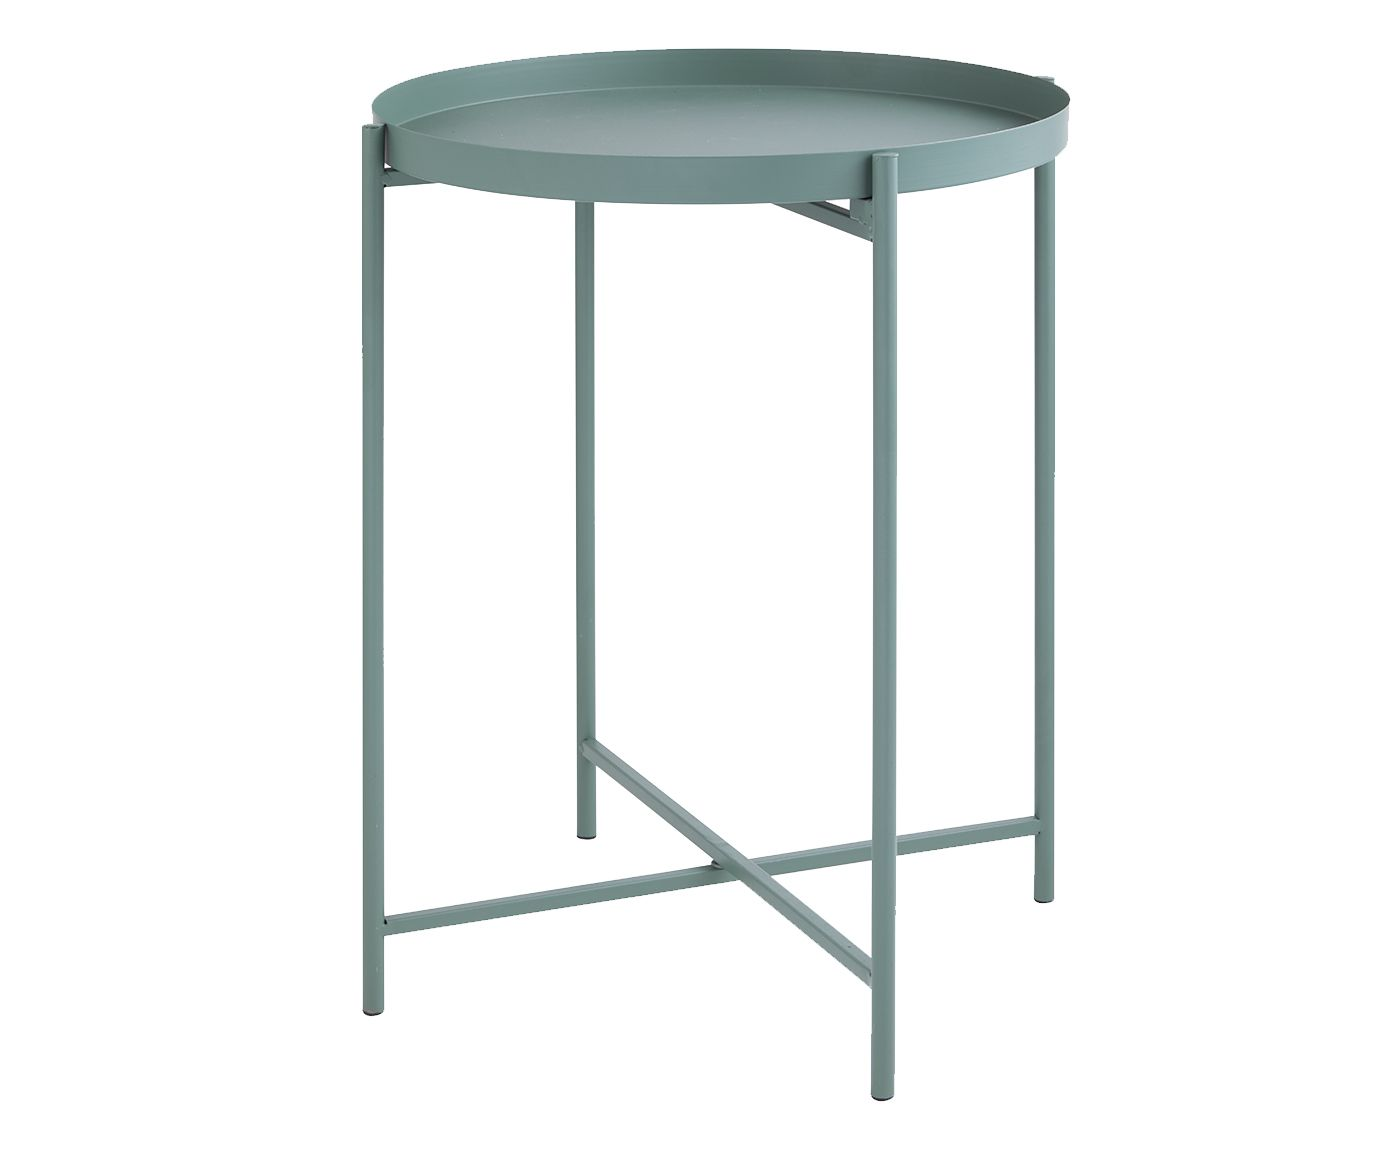 Mesa Lateral Columba Verde - 50X40cm | Westwing.com.br